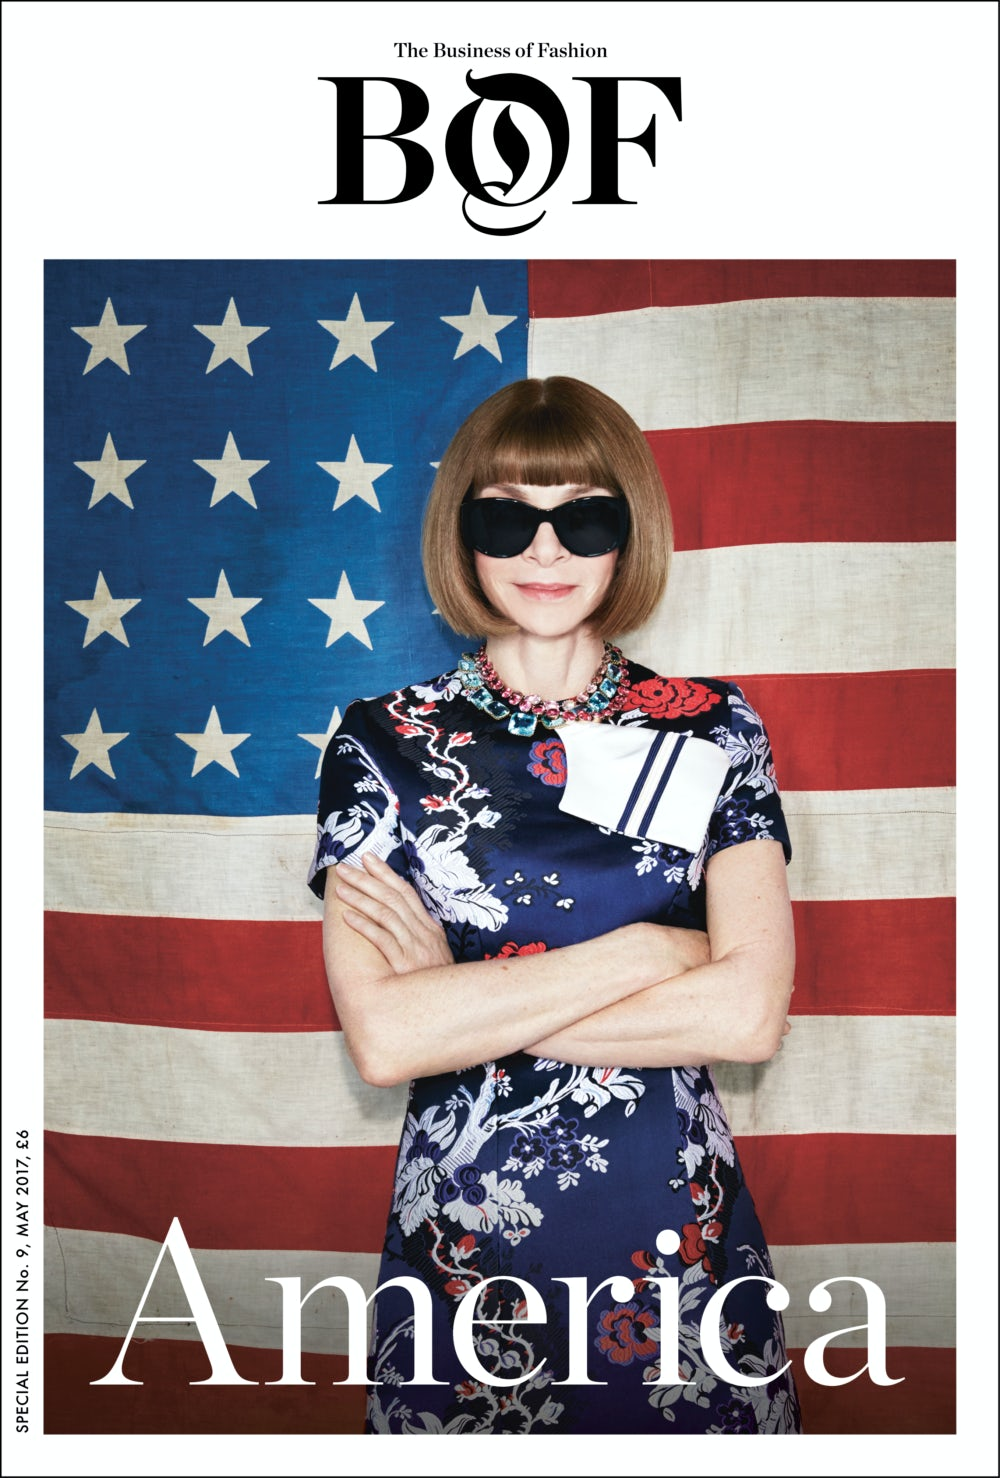 Anna Wintour on the cover of BoF